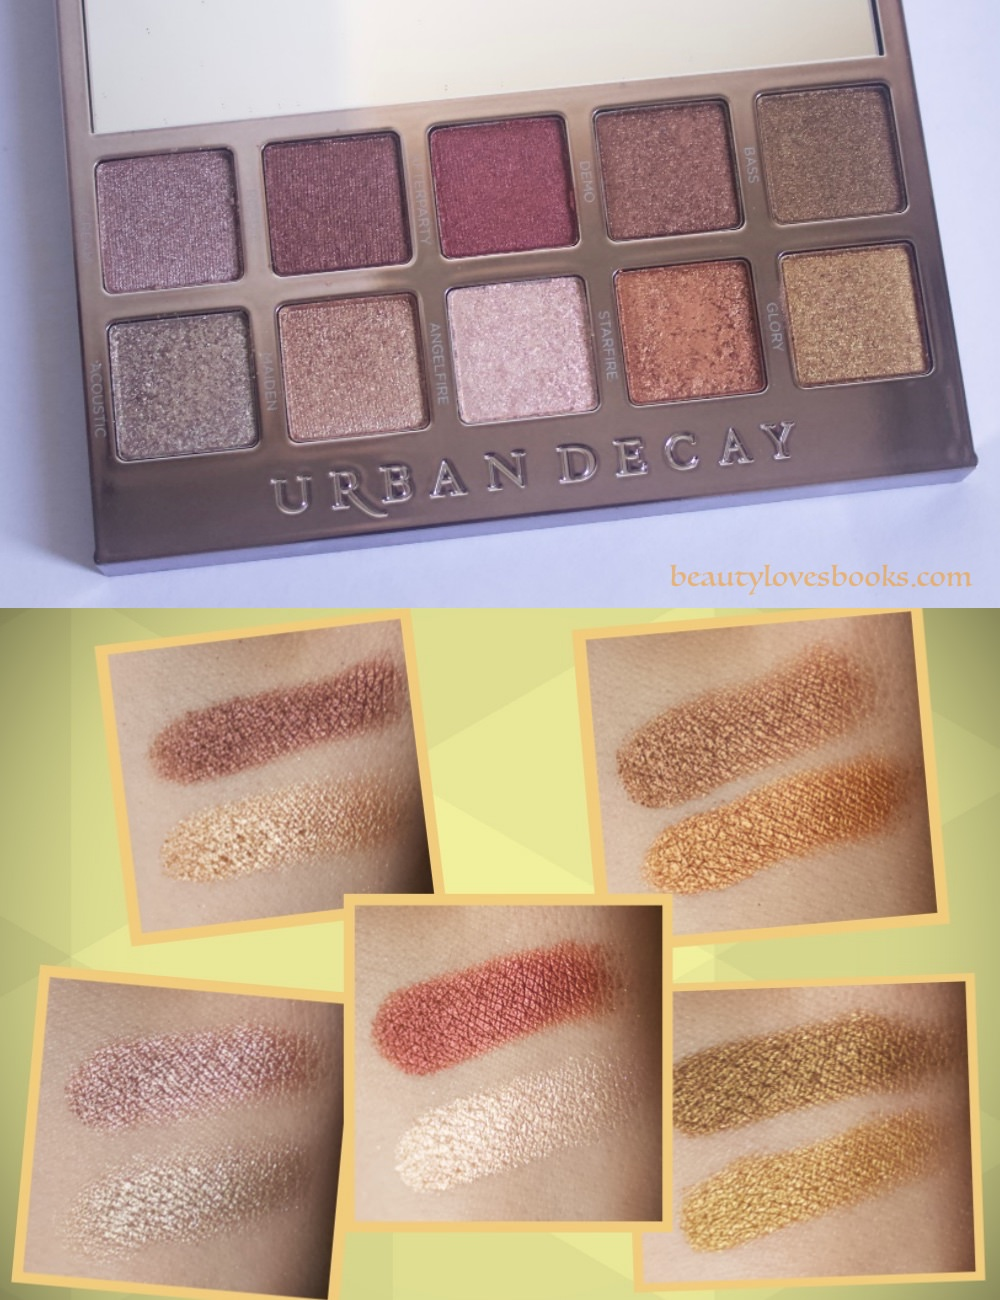 Urban Decay Heavy metals palette neutrals swatches